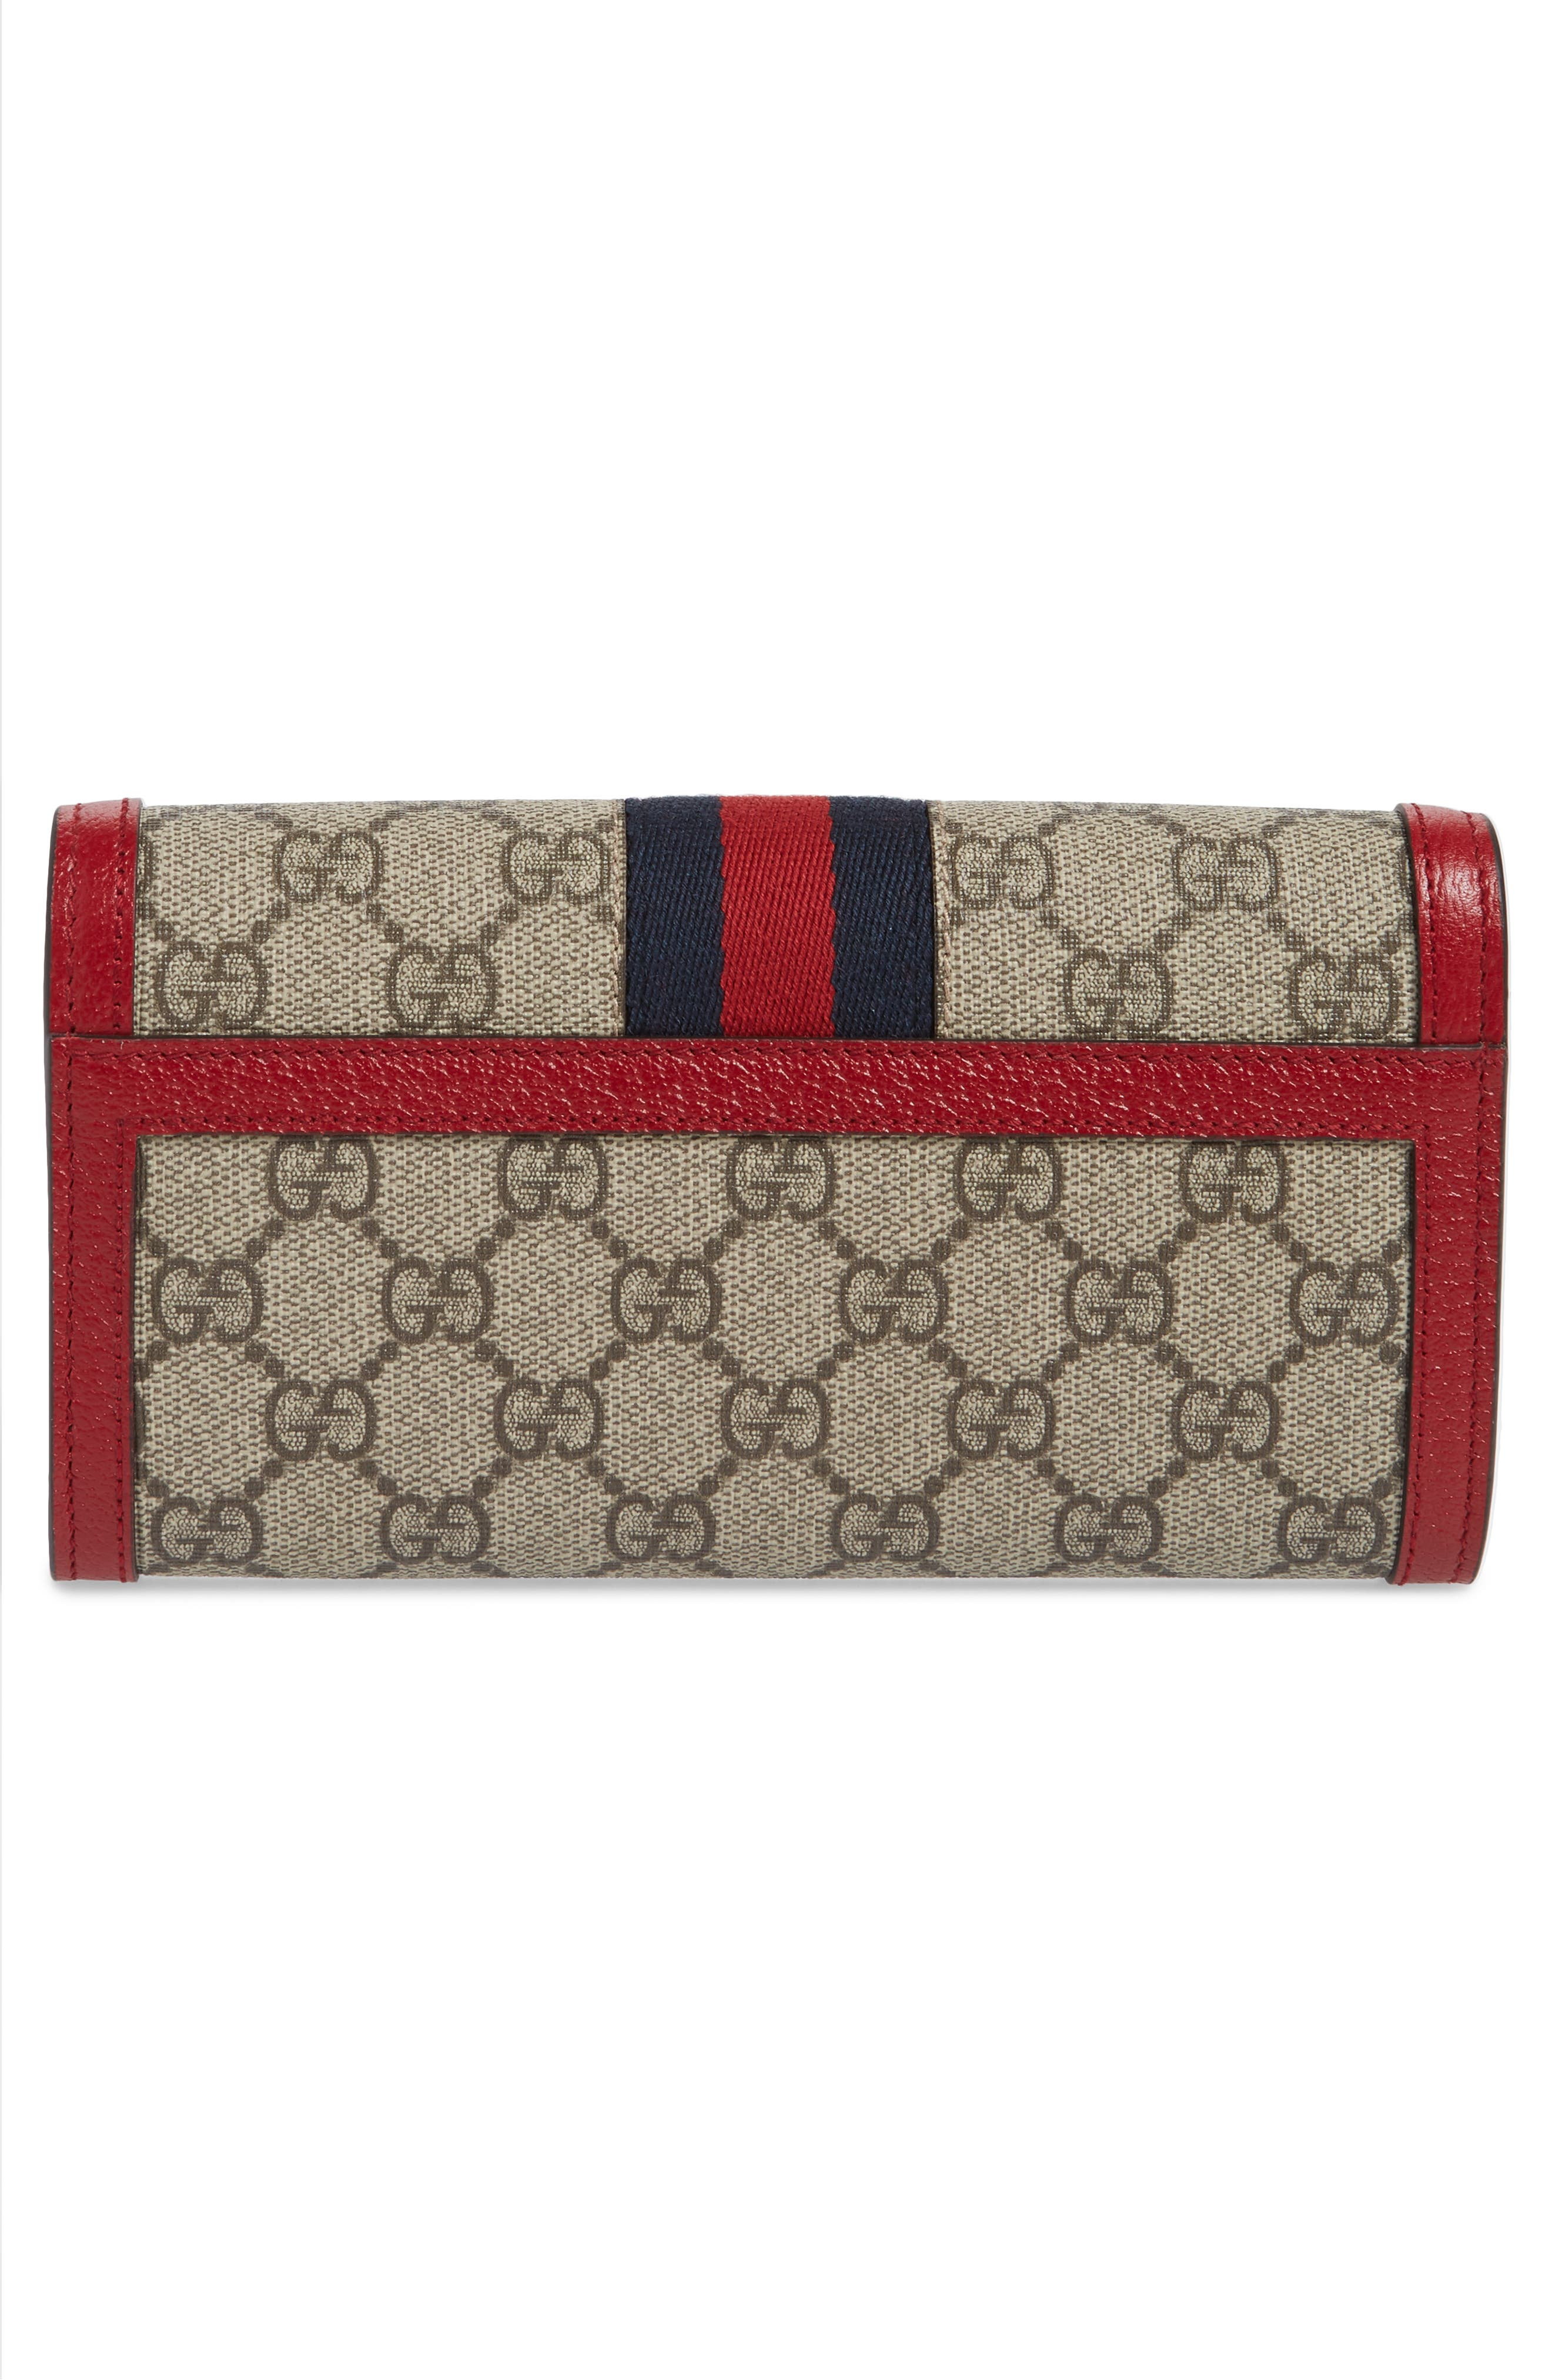 Queen Margaret GG Supreme Canvas Flap Wallet,                             Alternate thumbnail 3, color,                             BEIGE EBONY/ BLUE RED/ RUBY